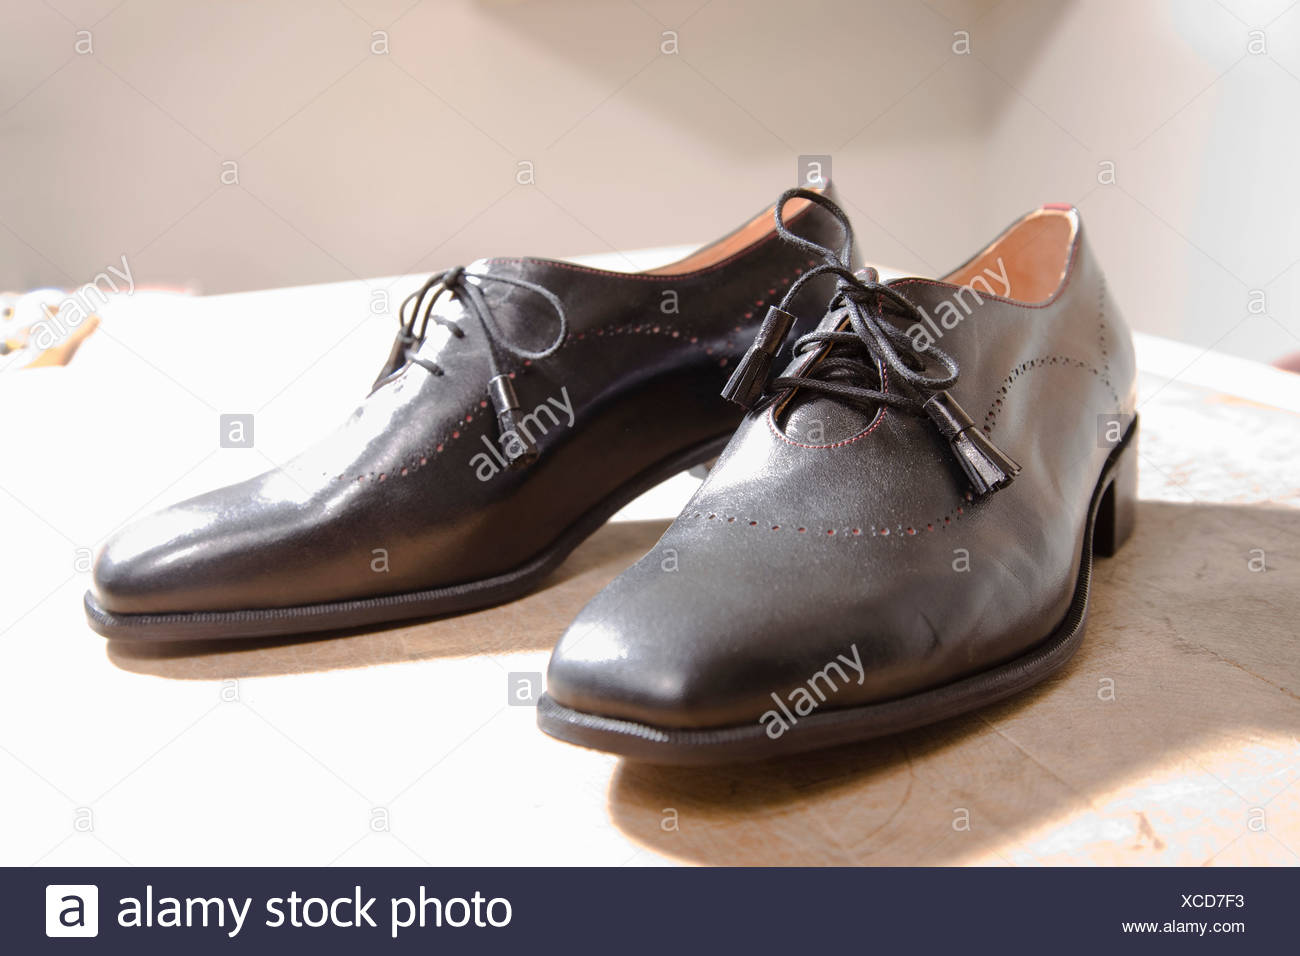 The result of works effort on shoes - Stock Image